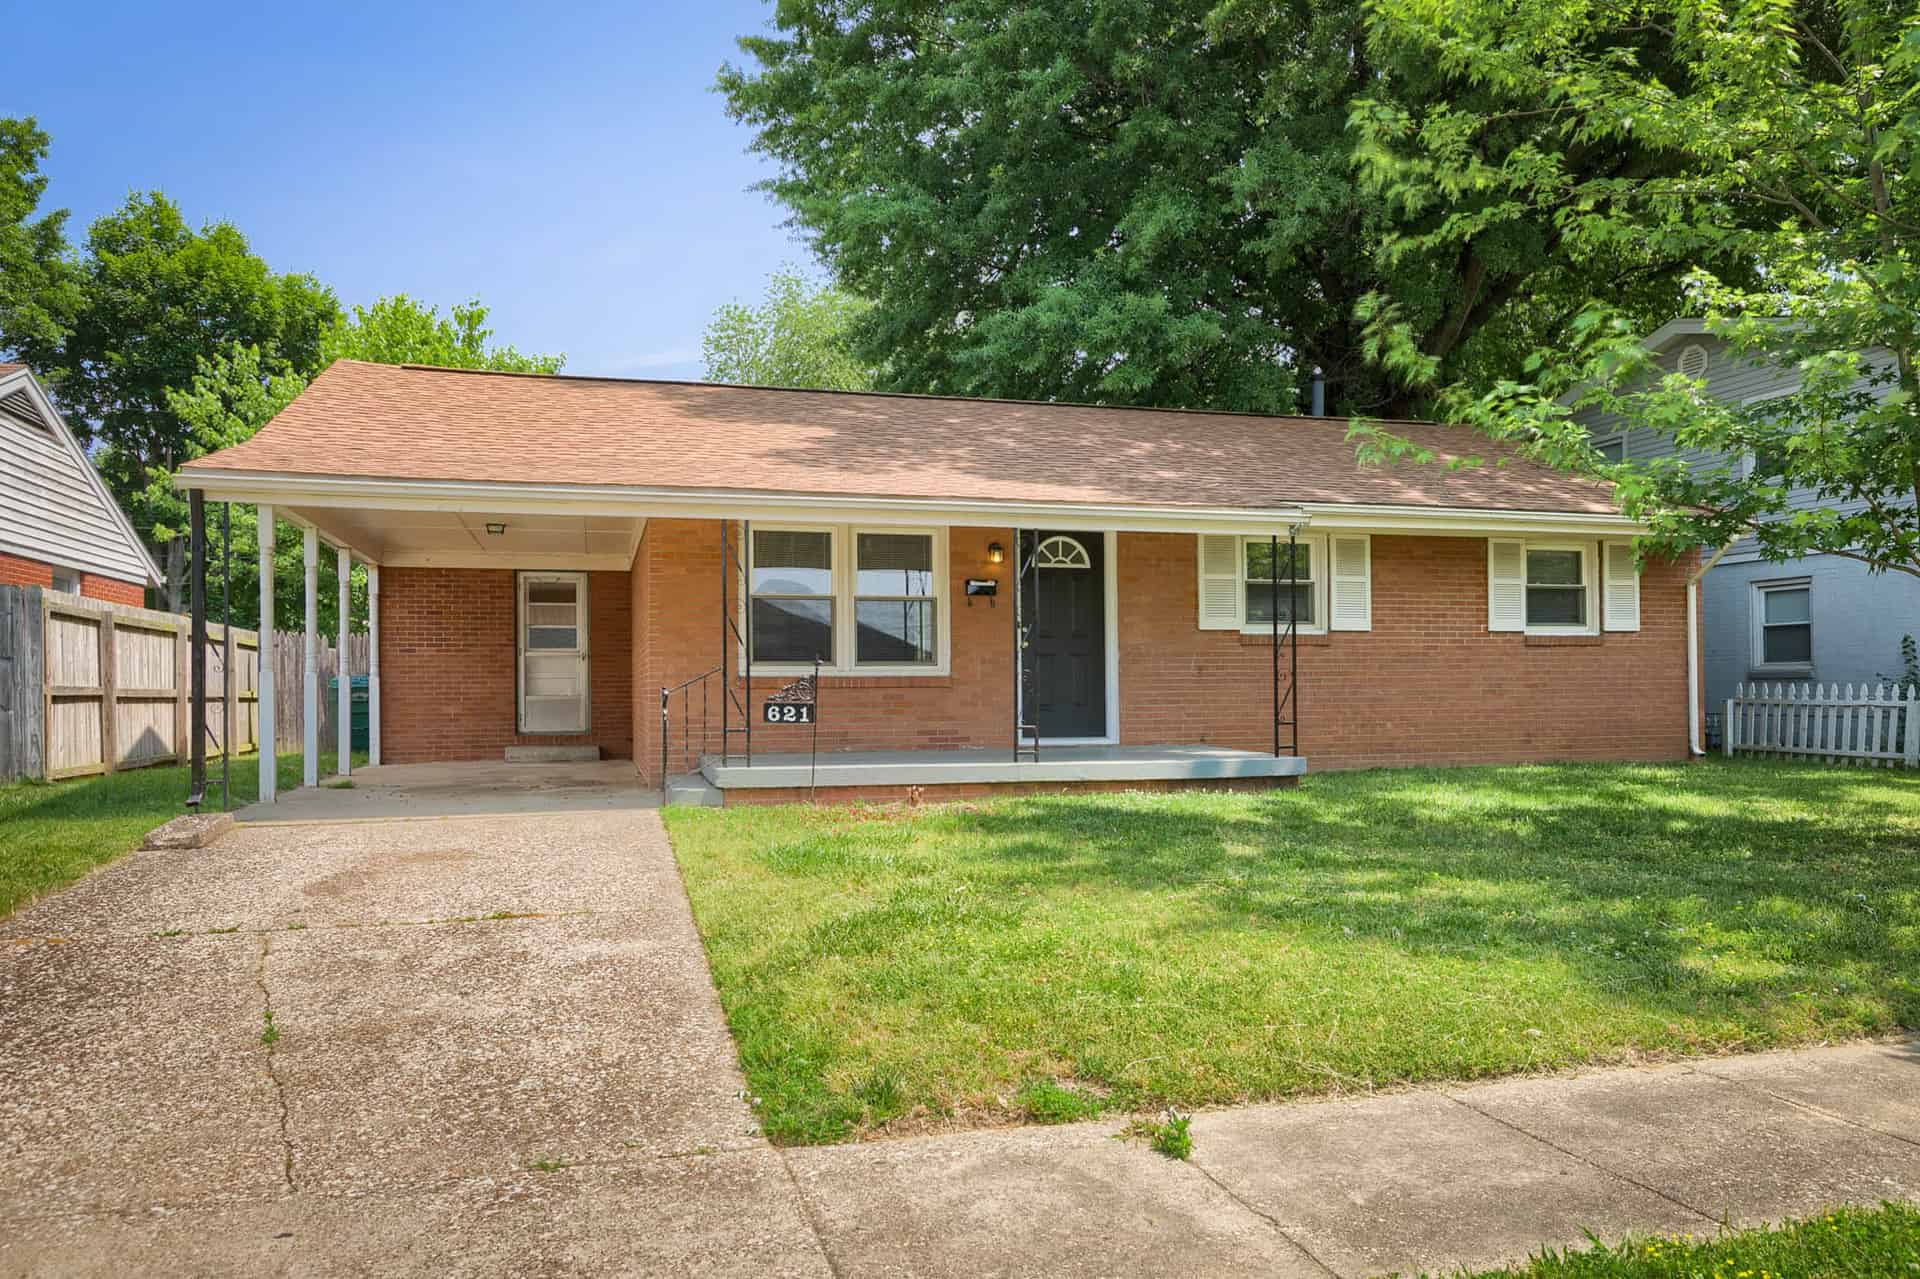 621 Amherst Dr., Owensboro, KY 42303